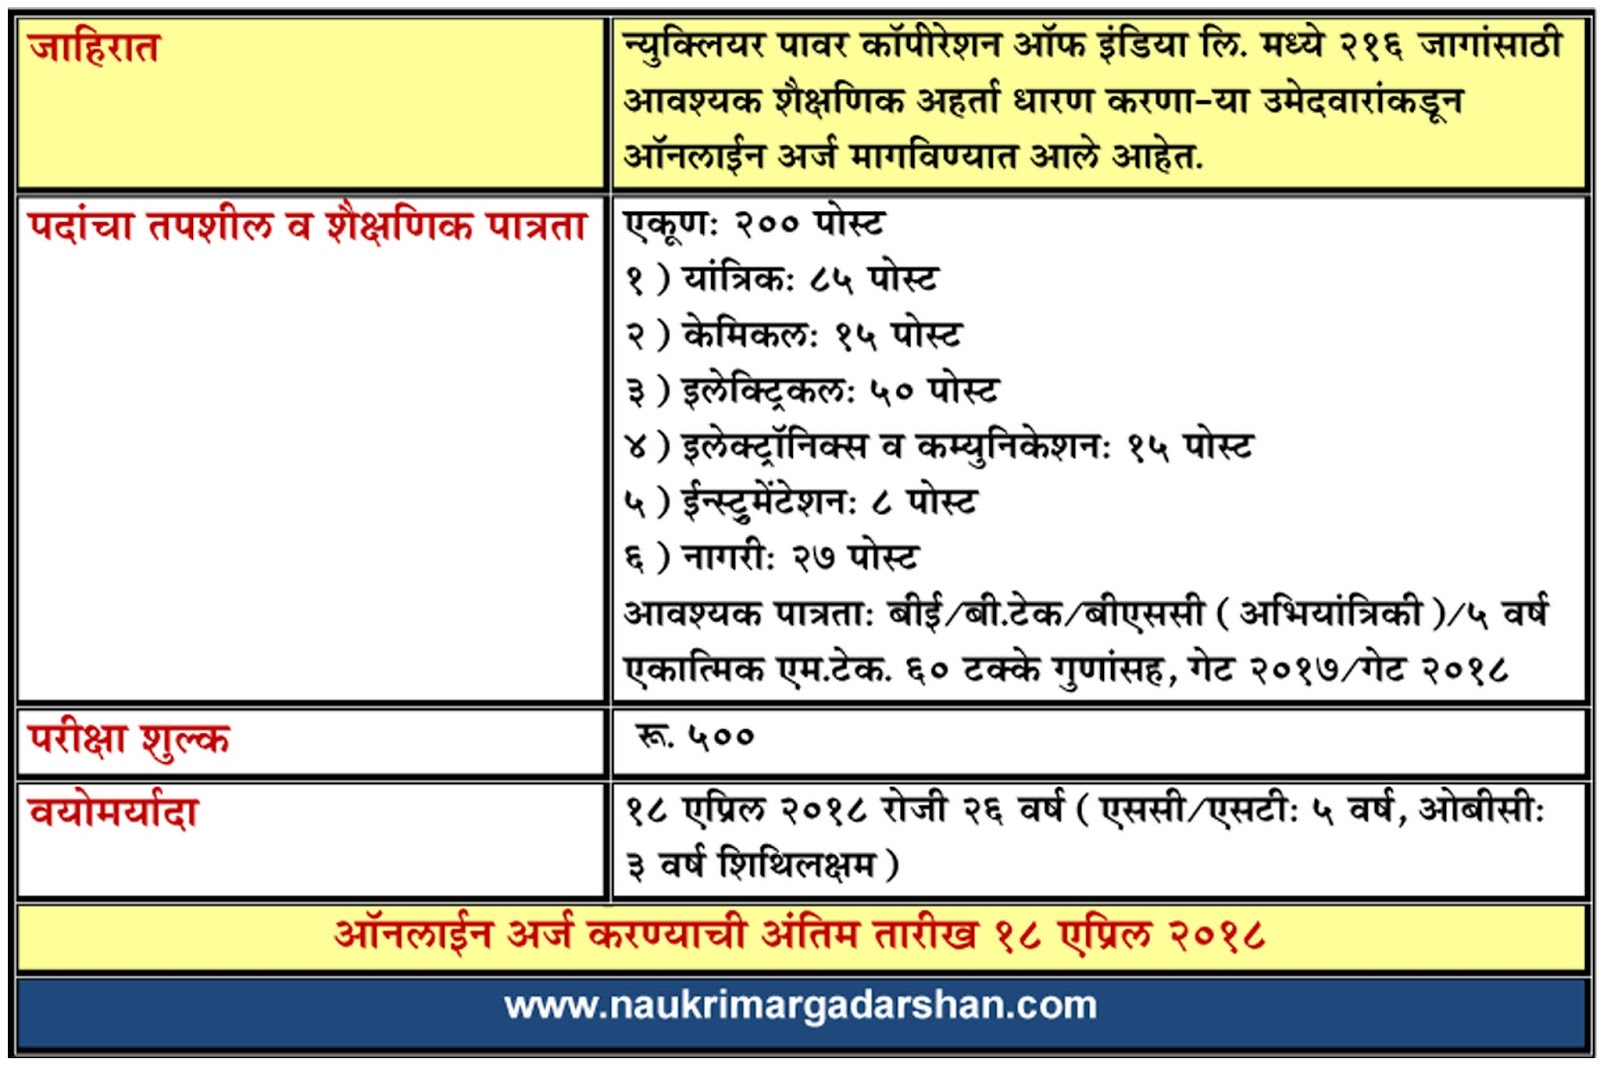 npcil jobs, naukri margadarshan, nokri margadarshan